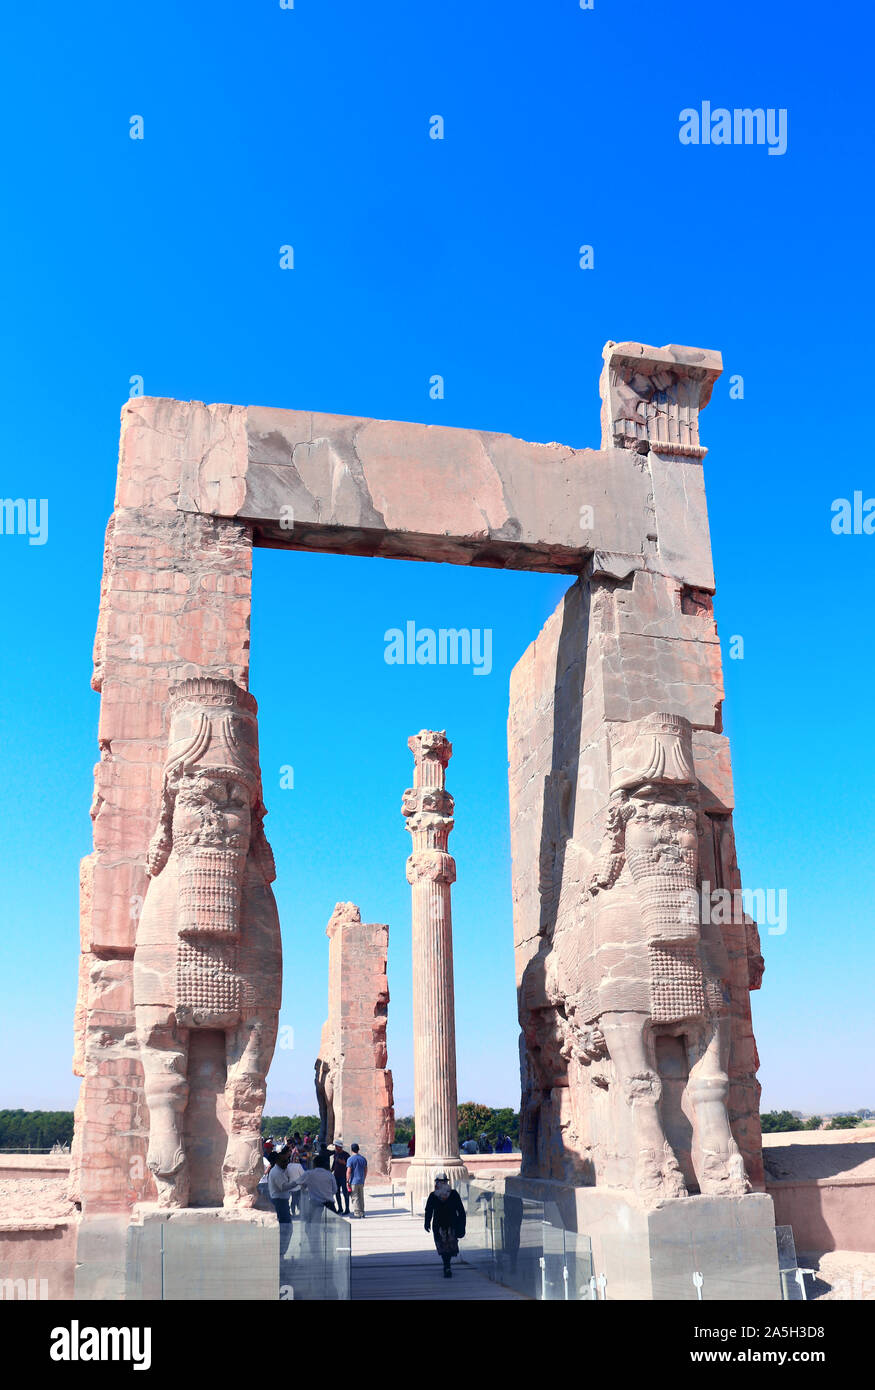 Gate Of All Nations Xerxes Gate With Stone Statues Of Lamassu In Ancient City Persepolis Iran Unesco World Heritage Site Stock Photo Alamy